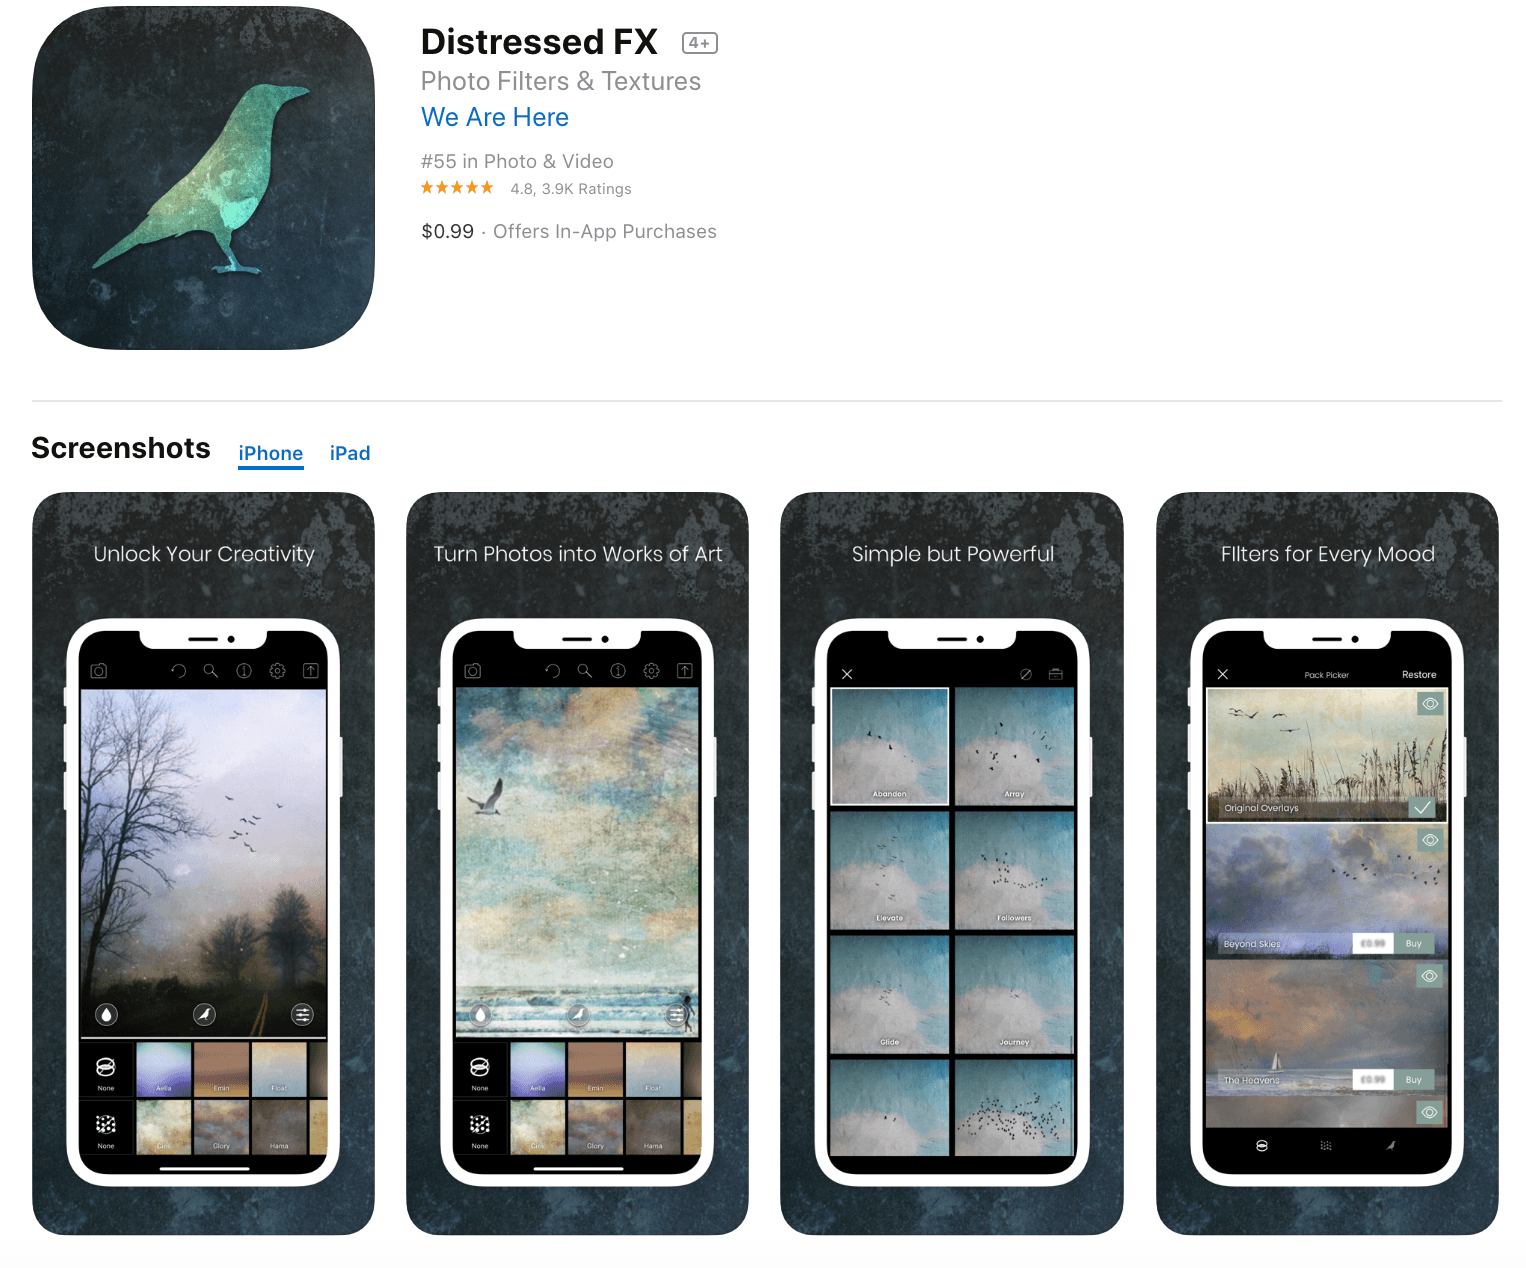 Distressed FX Paid Photo Editor App